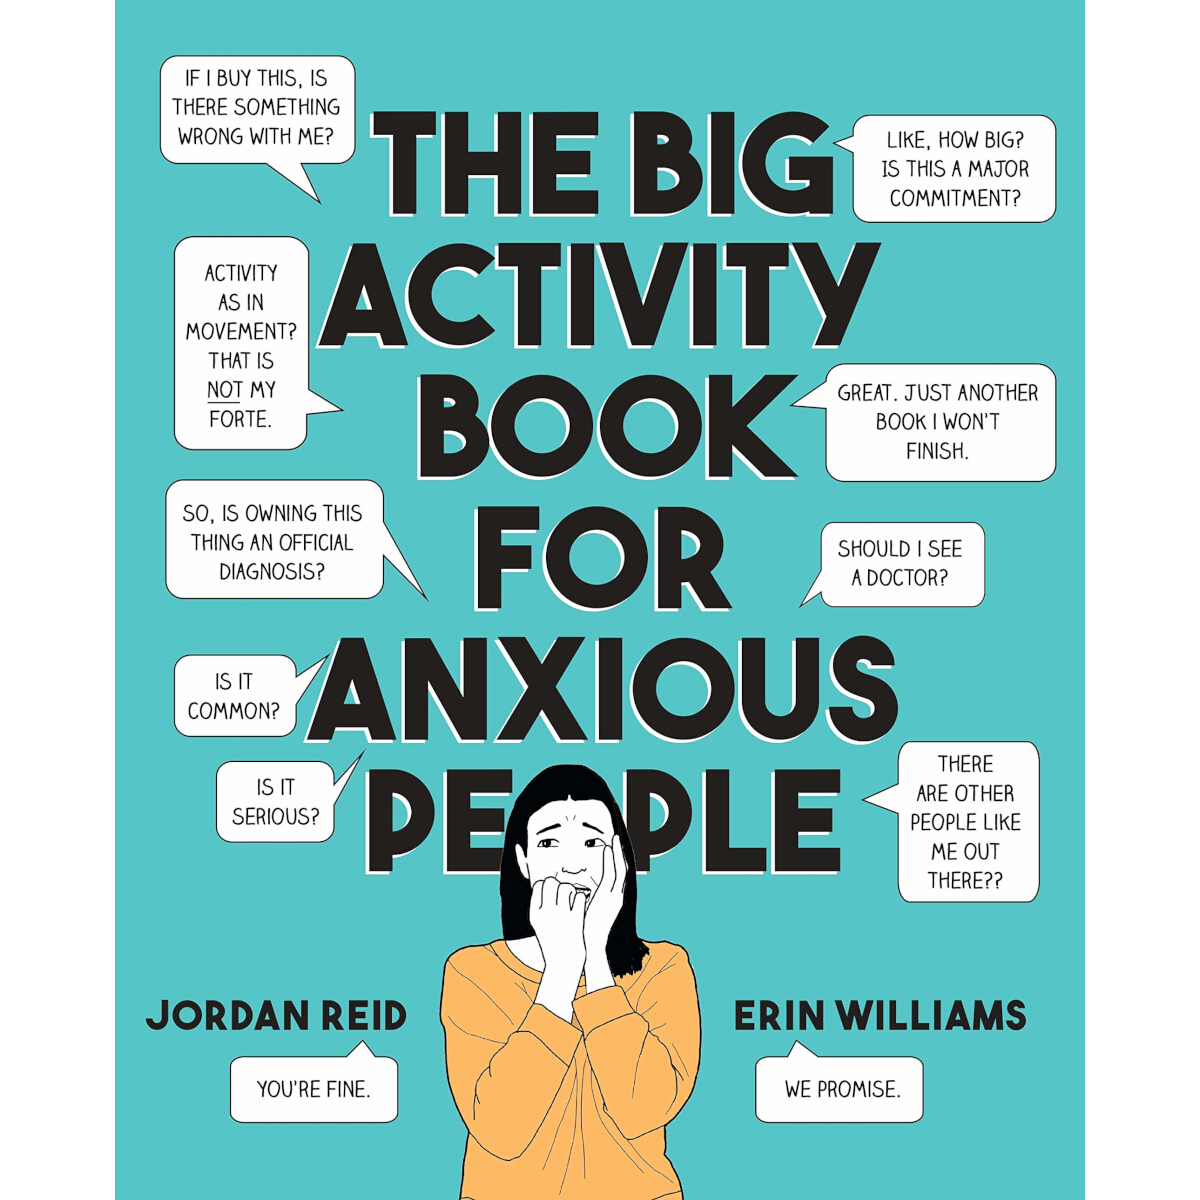 The-Big-Activity-Book-For-Anxious-People-Main-Image